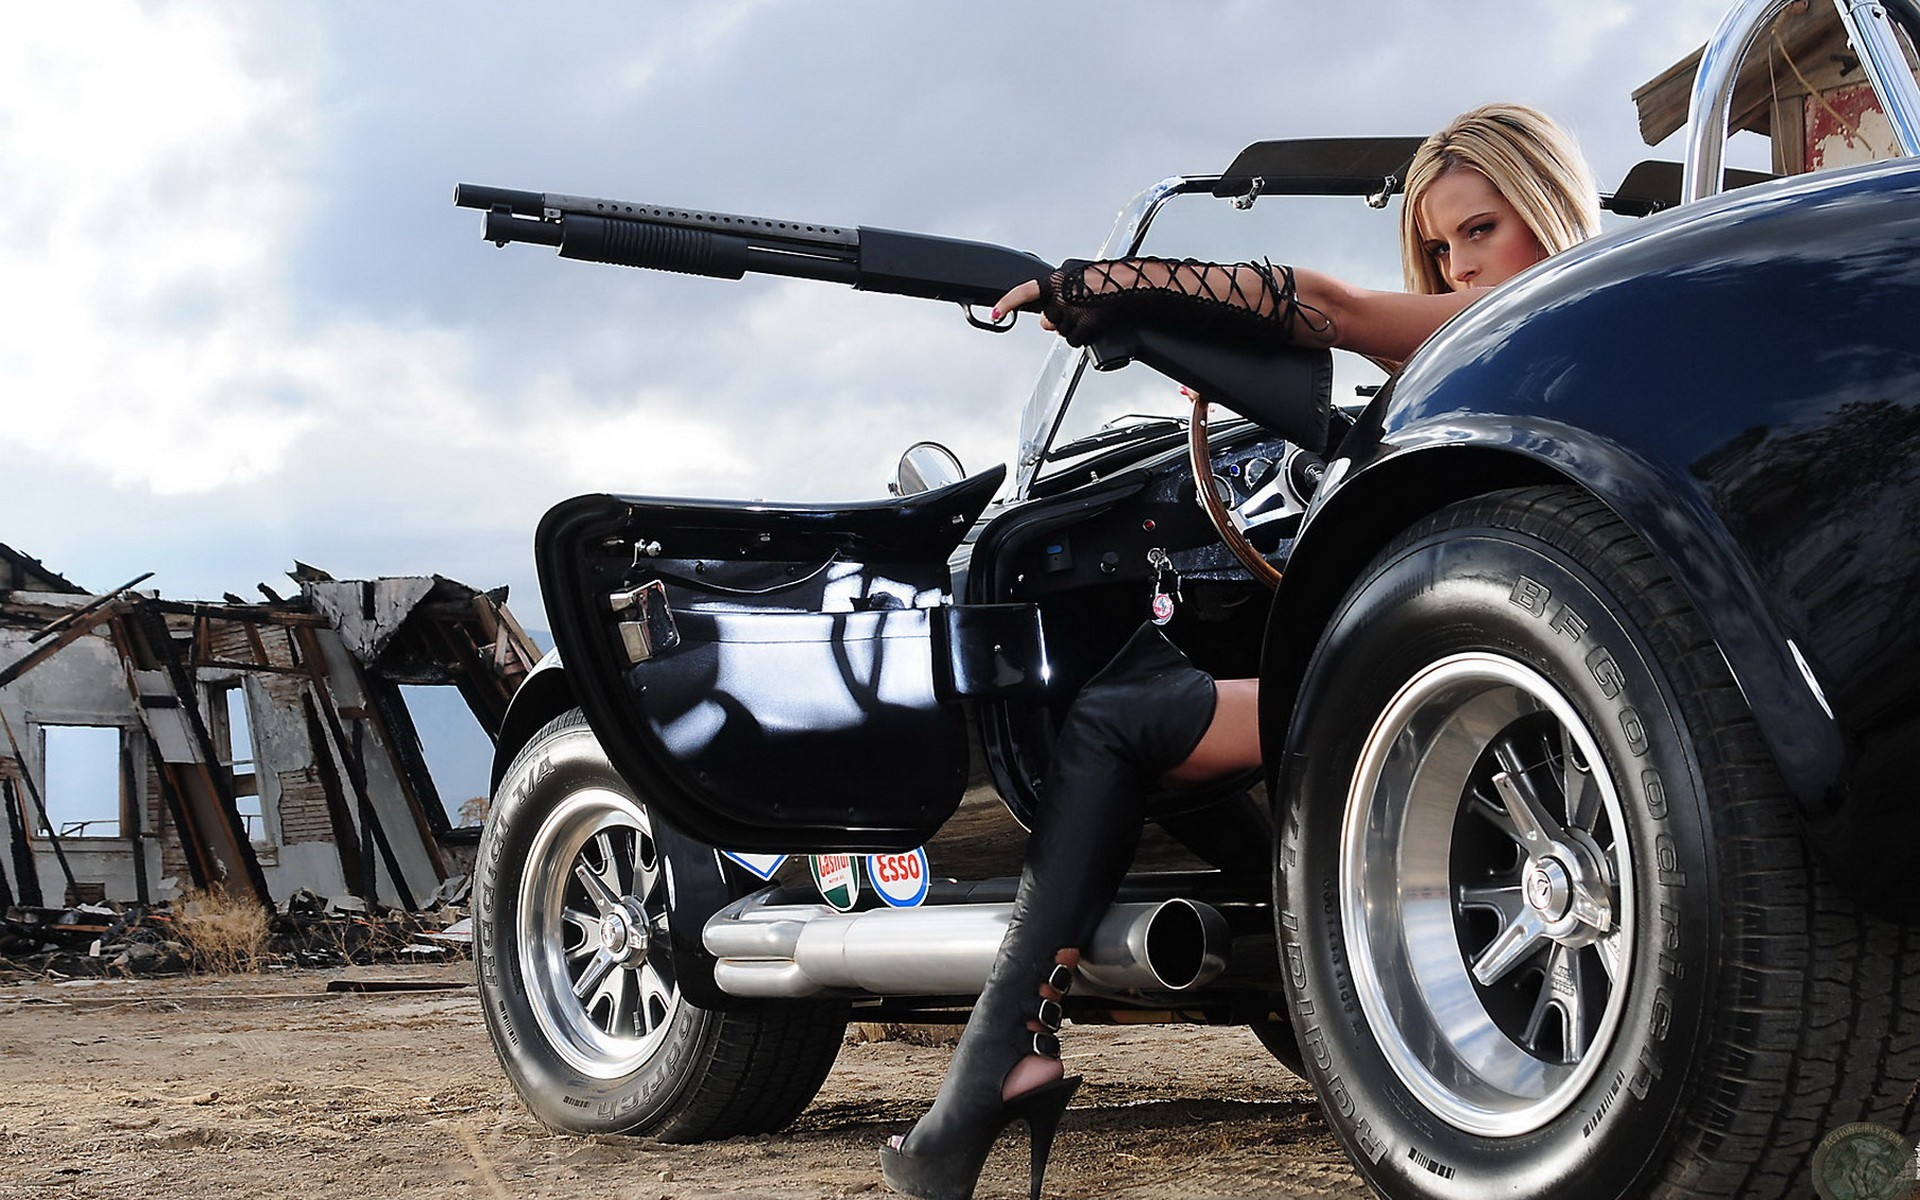 Babes, muscle cars and guns. Everything the zombie apocalypse needs.